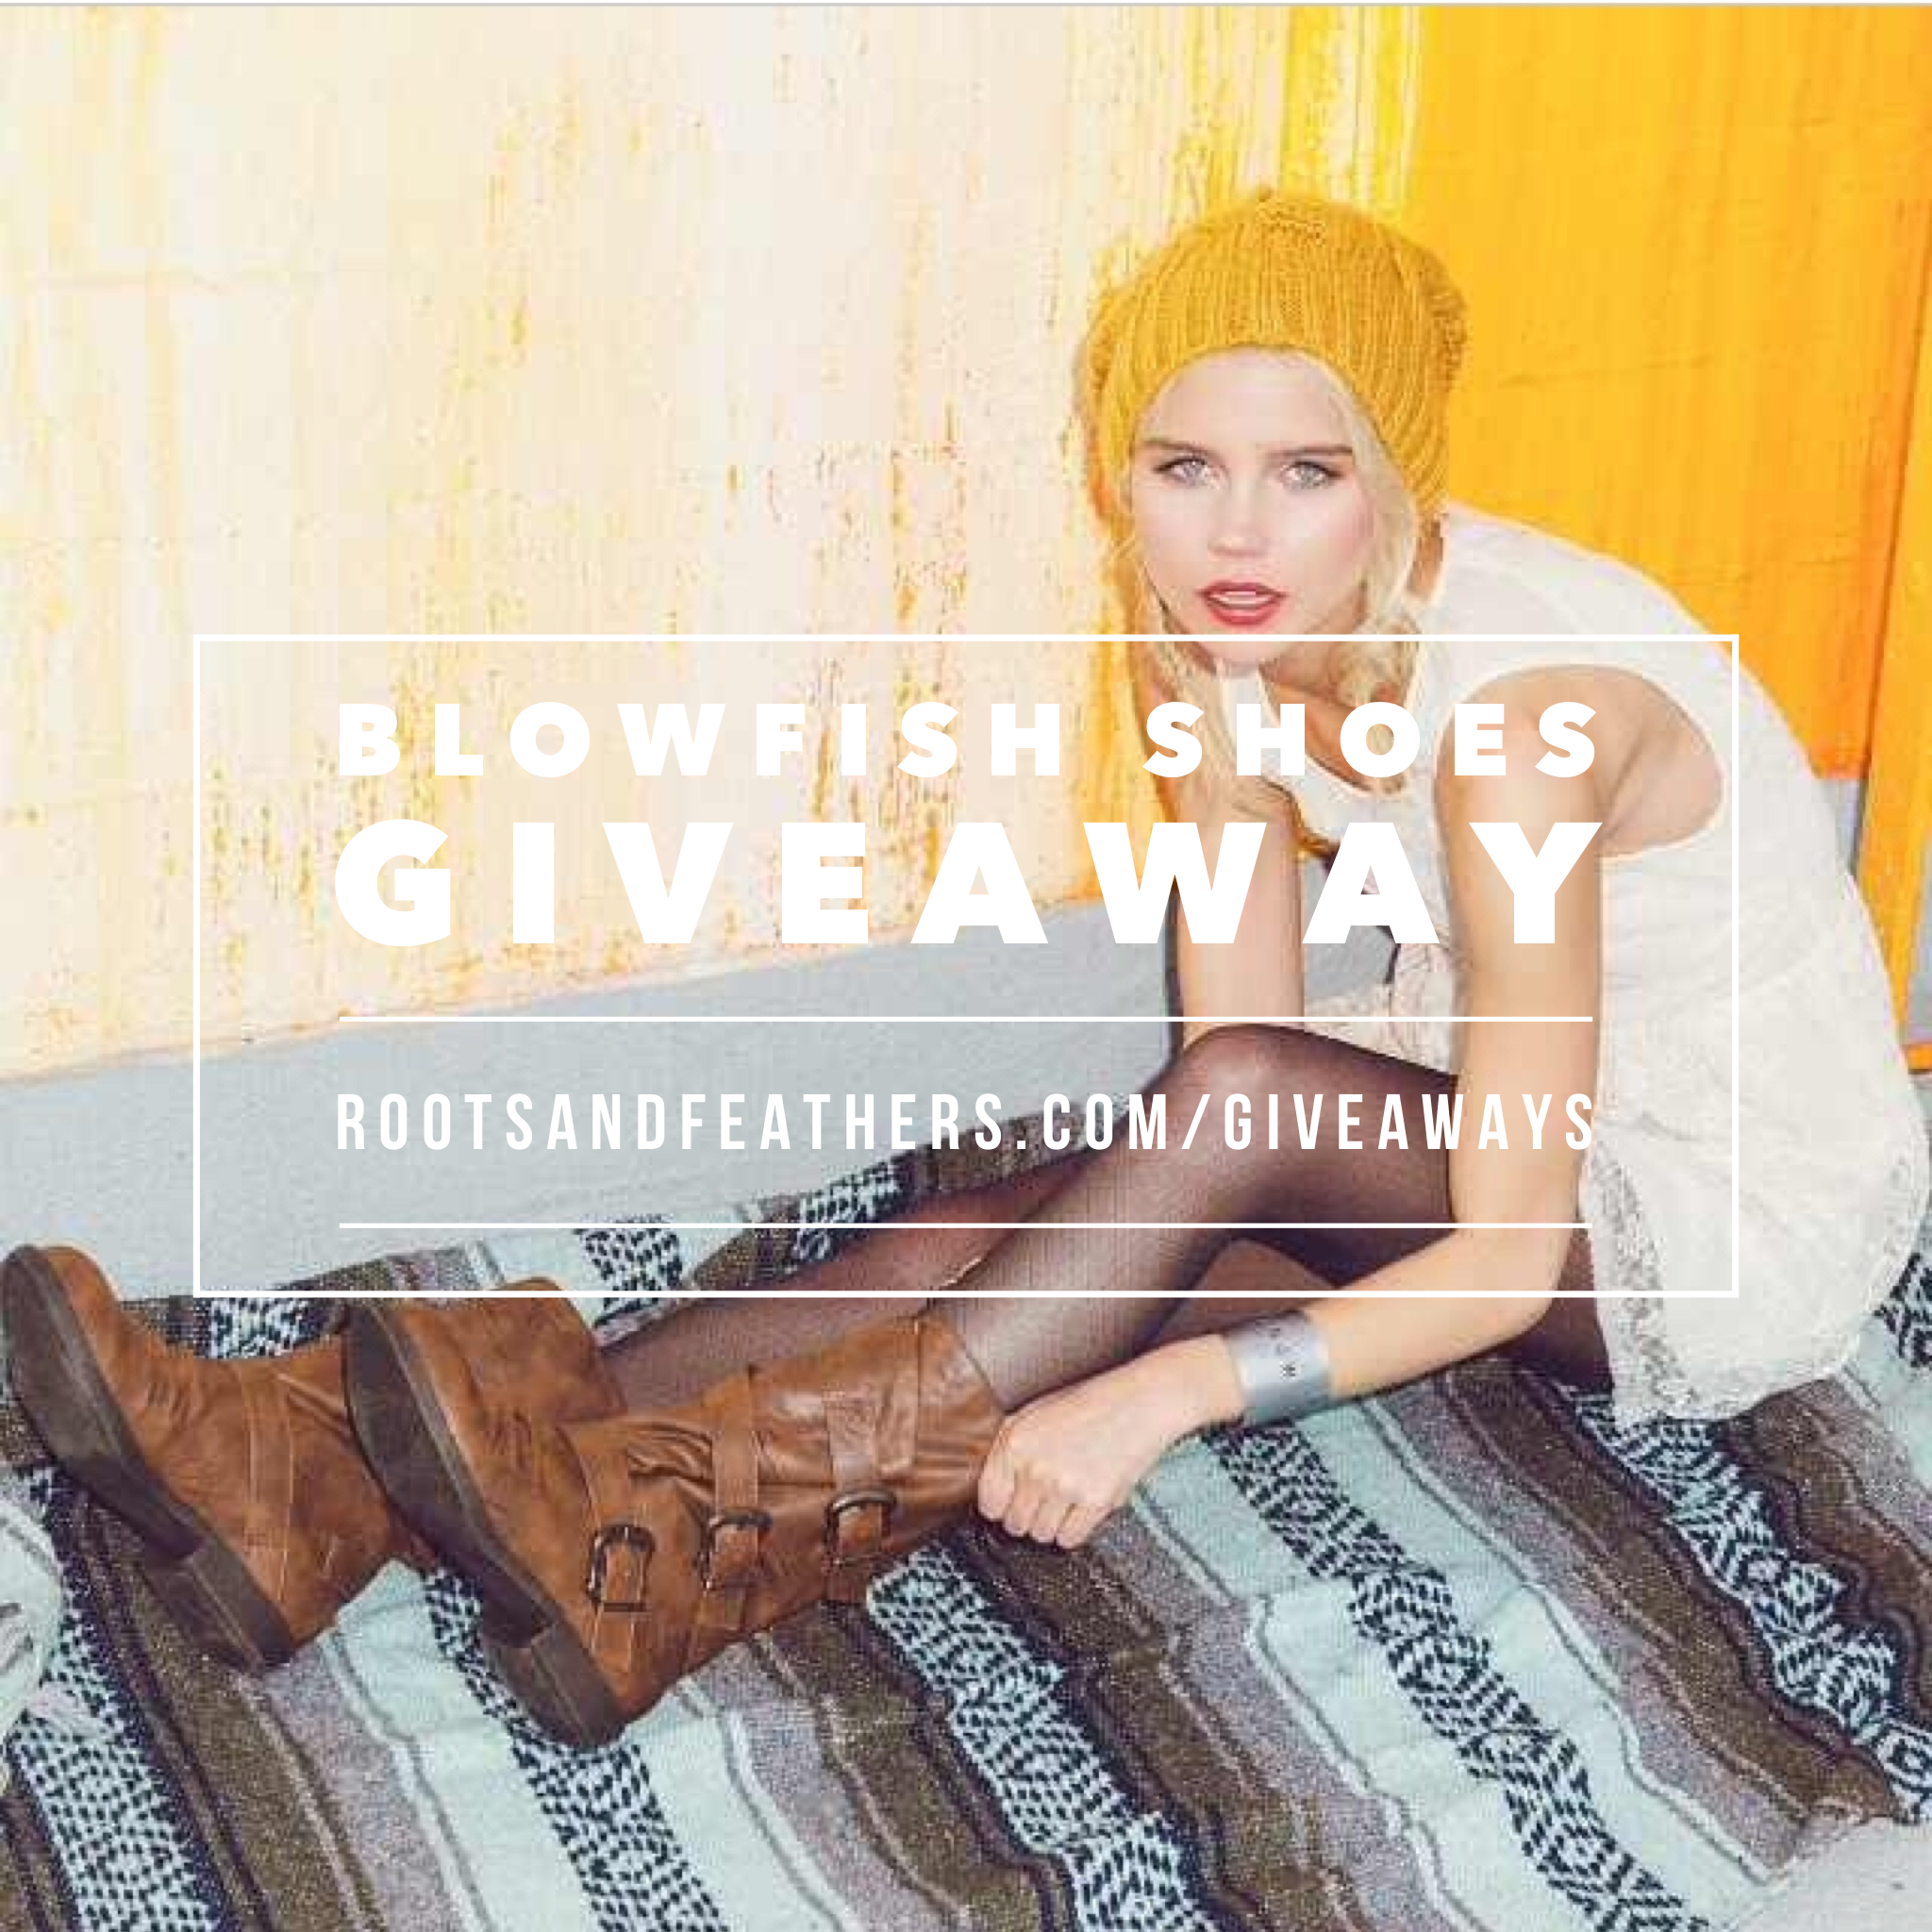 Blowfish Shoes Giveaway via rootsandfeathers.com/giveaways